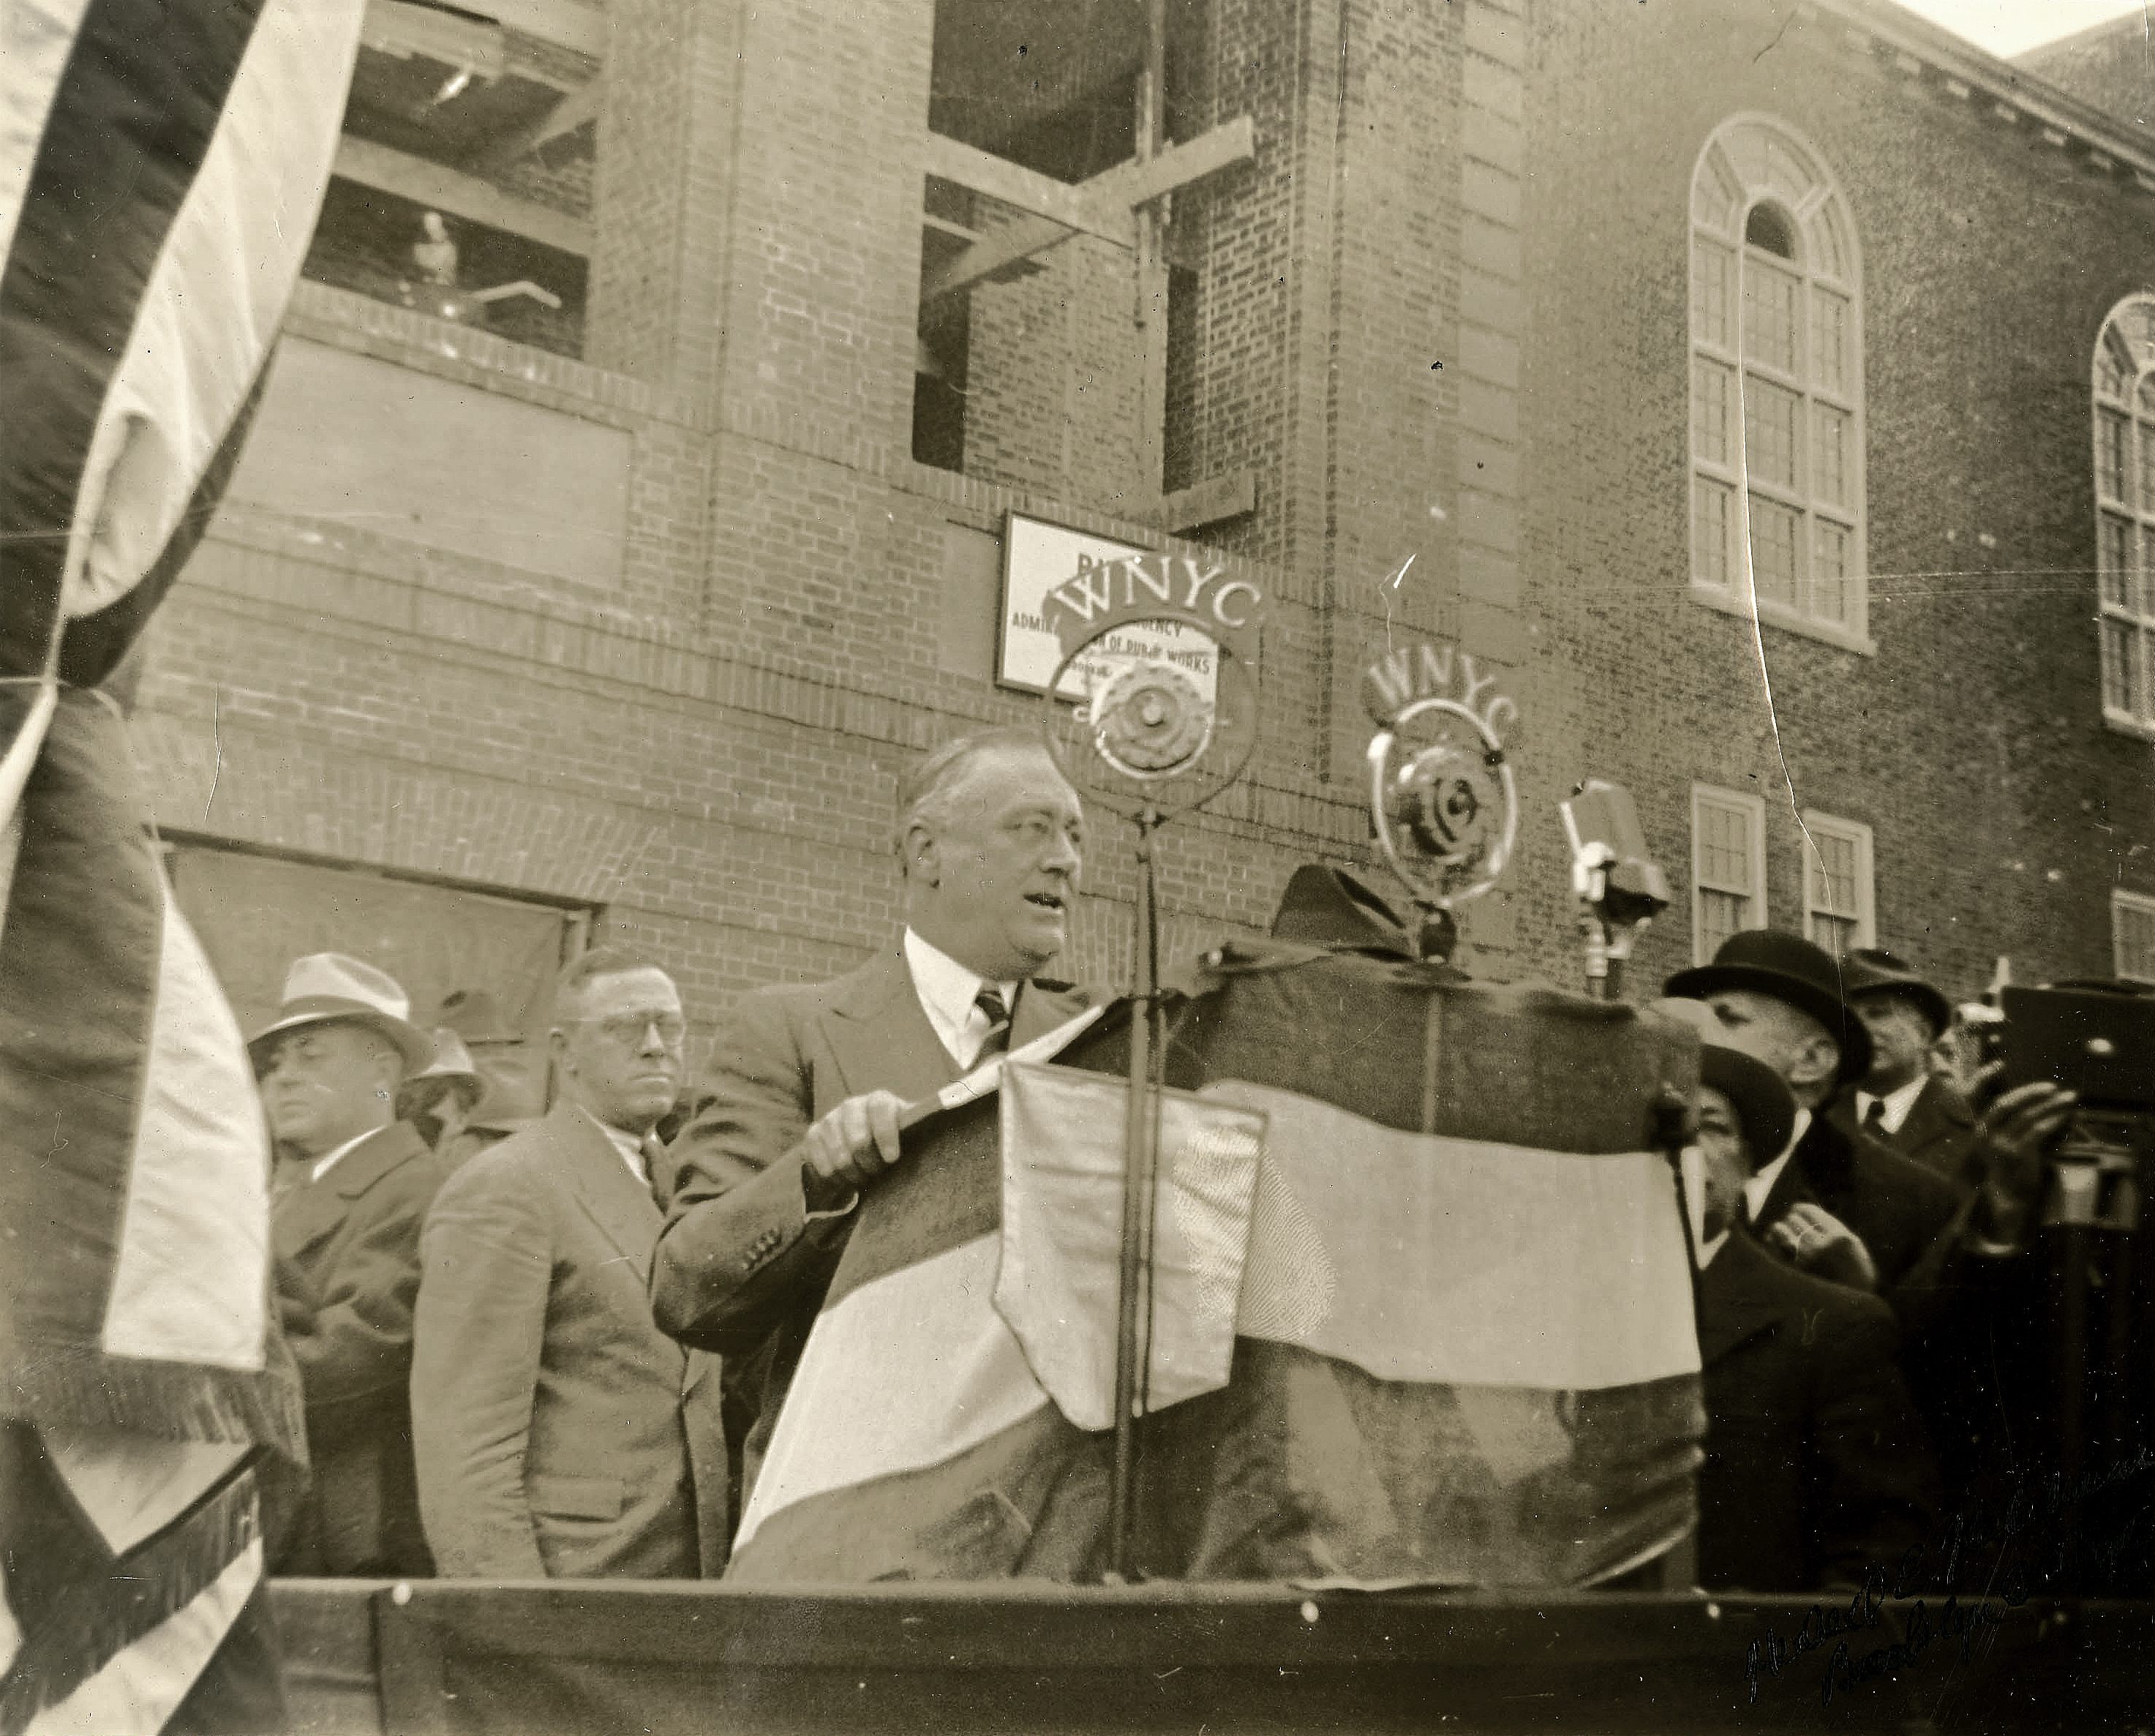 Franklin Roosevelt Brooklyn College Laying Cornerstone Ceremony, 1937